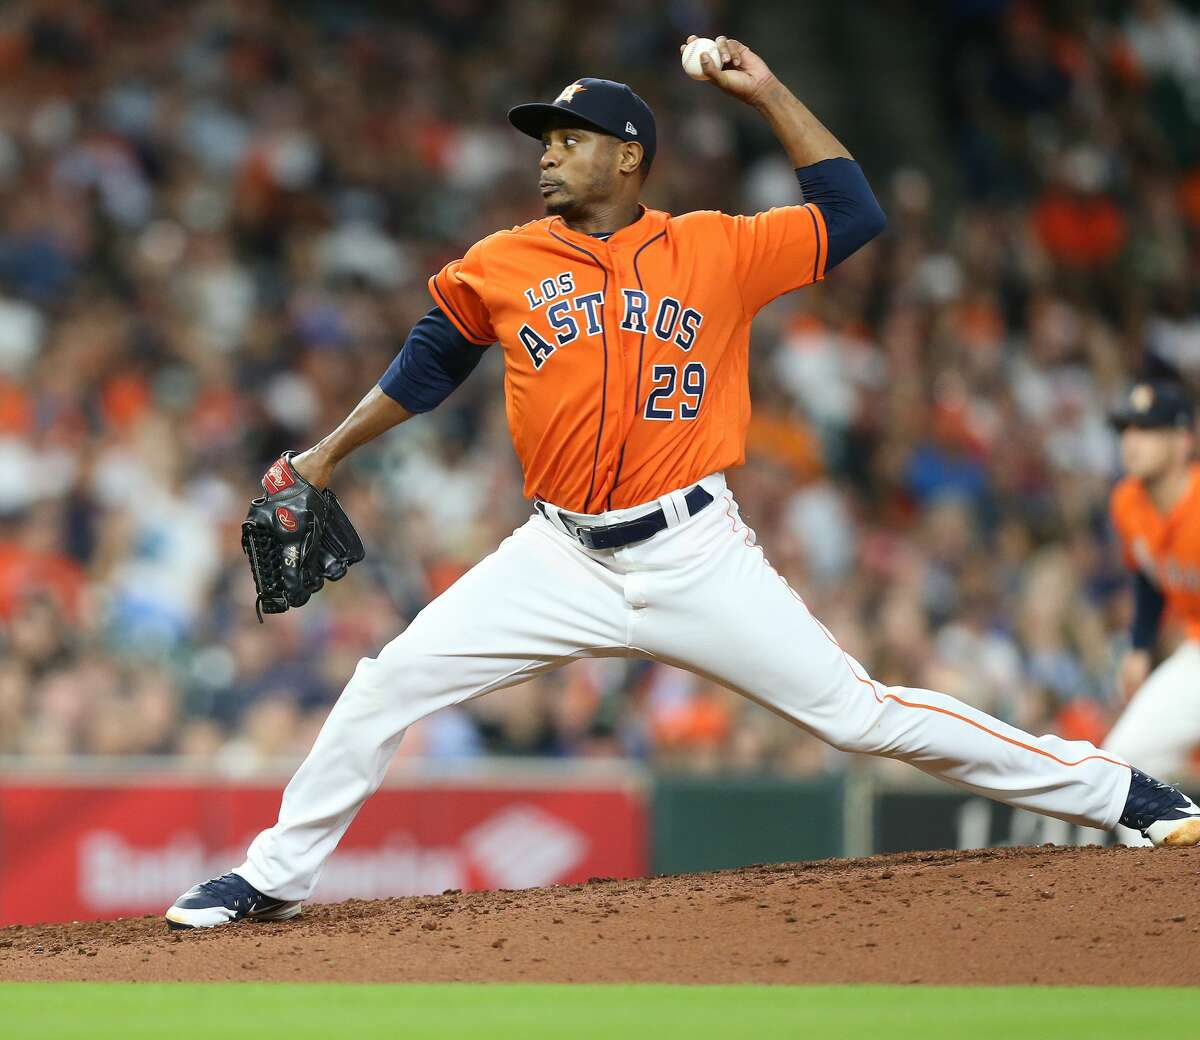 Houston Astros relief pitcher Tony Sipp (29) pitches in the seventh inning against the Arizona Diamondbacks at Minute Maid Park on Friday, Sept. 14, 2018 in Houston.